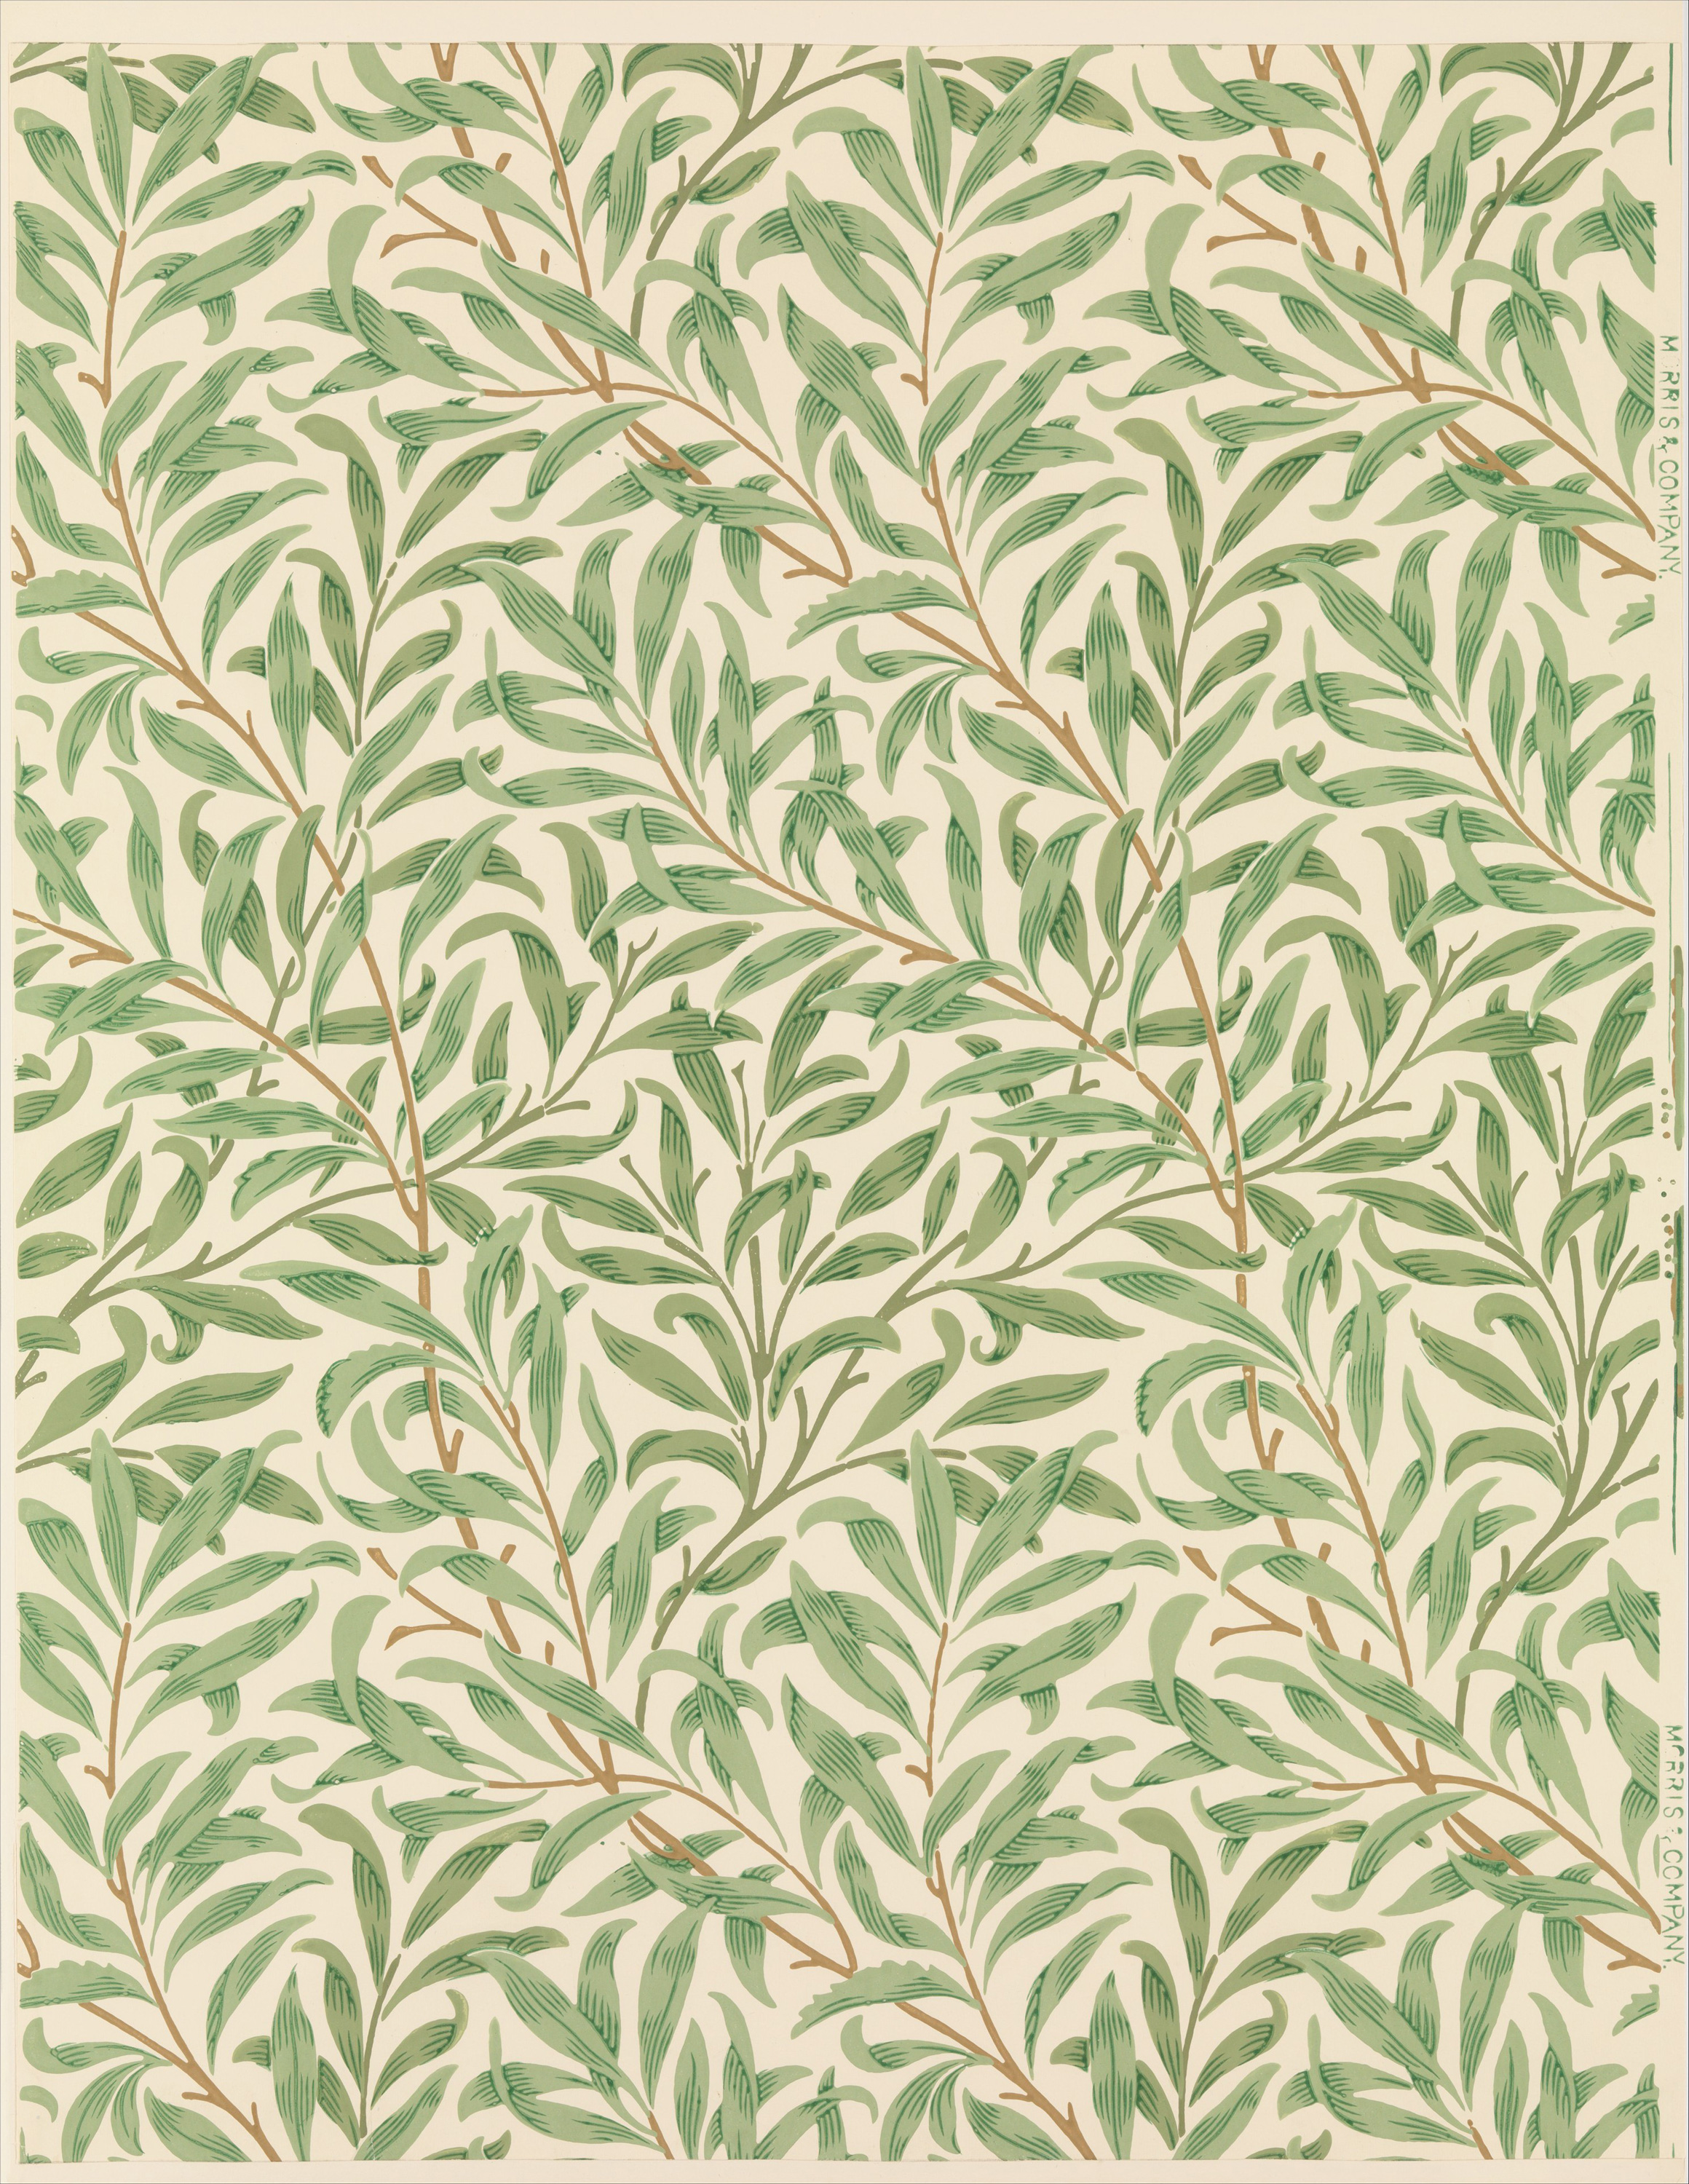 Willow Bough By William Morris Trivium Art History